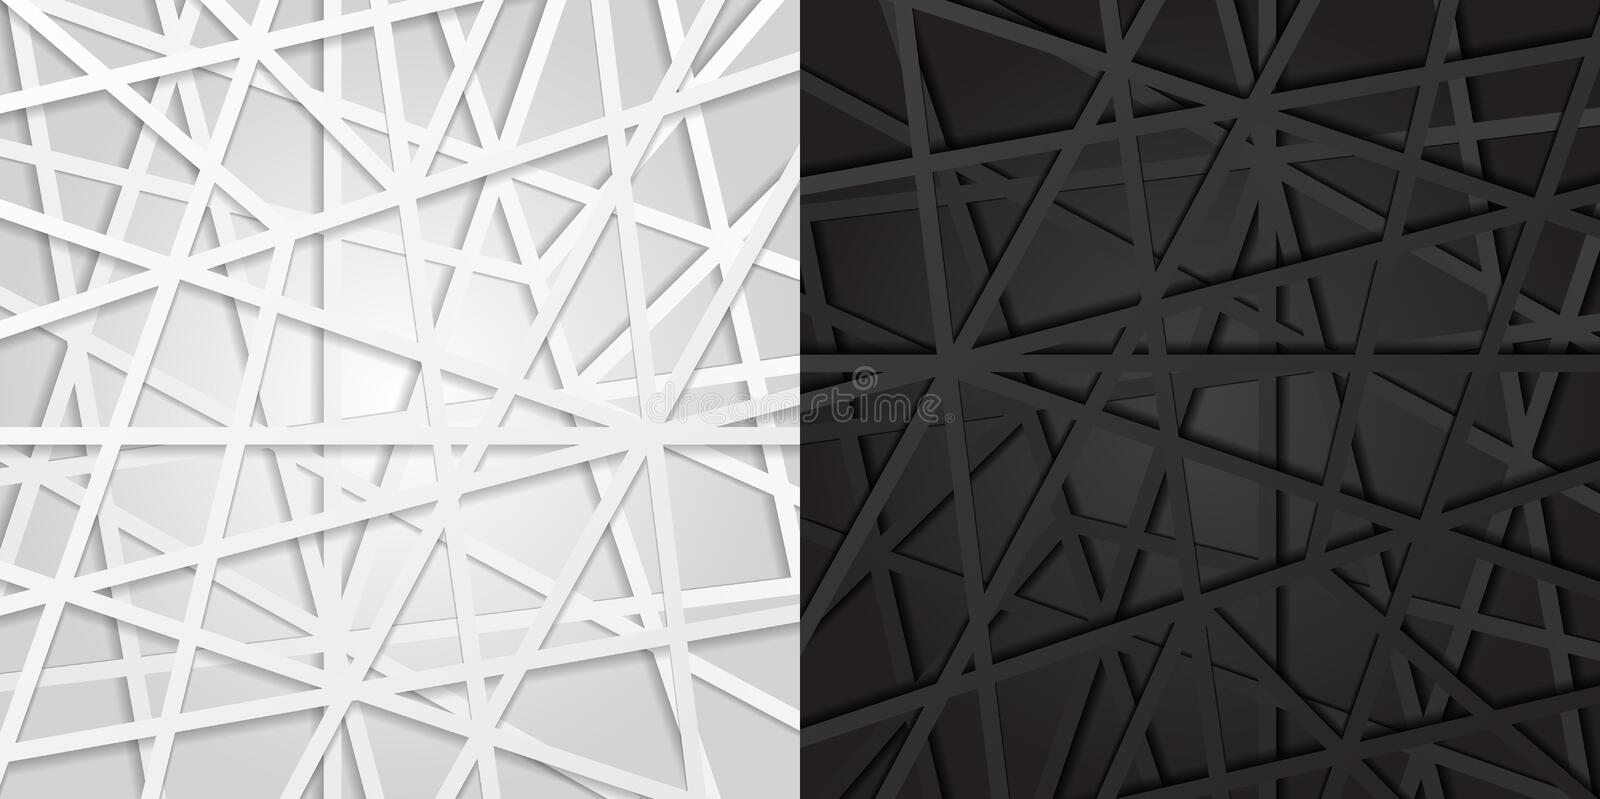 Abstract black and white lines futuristic overlap background. Vector illustration, digital. Connection royalty free illustration